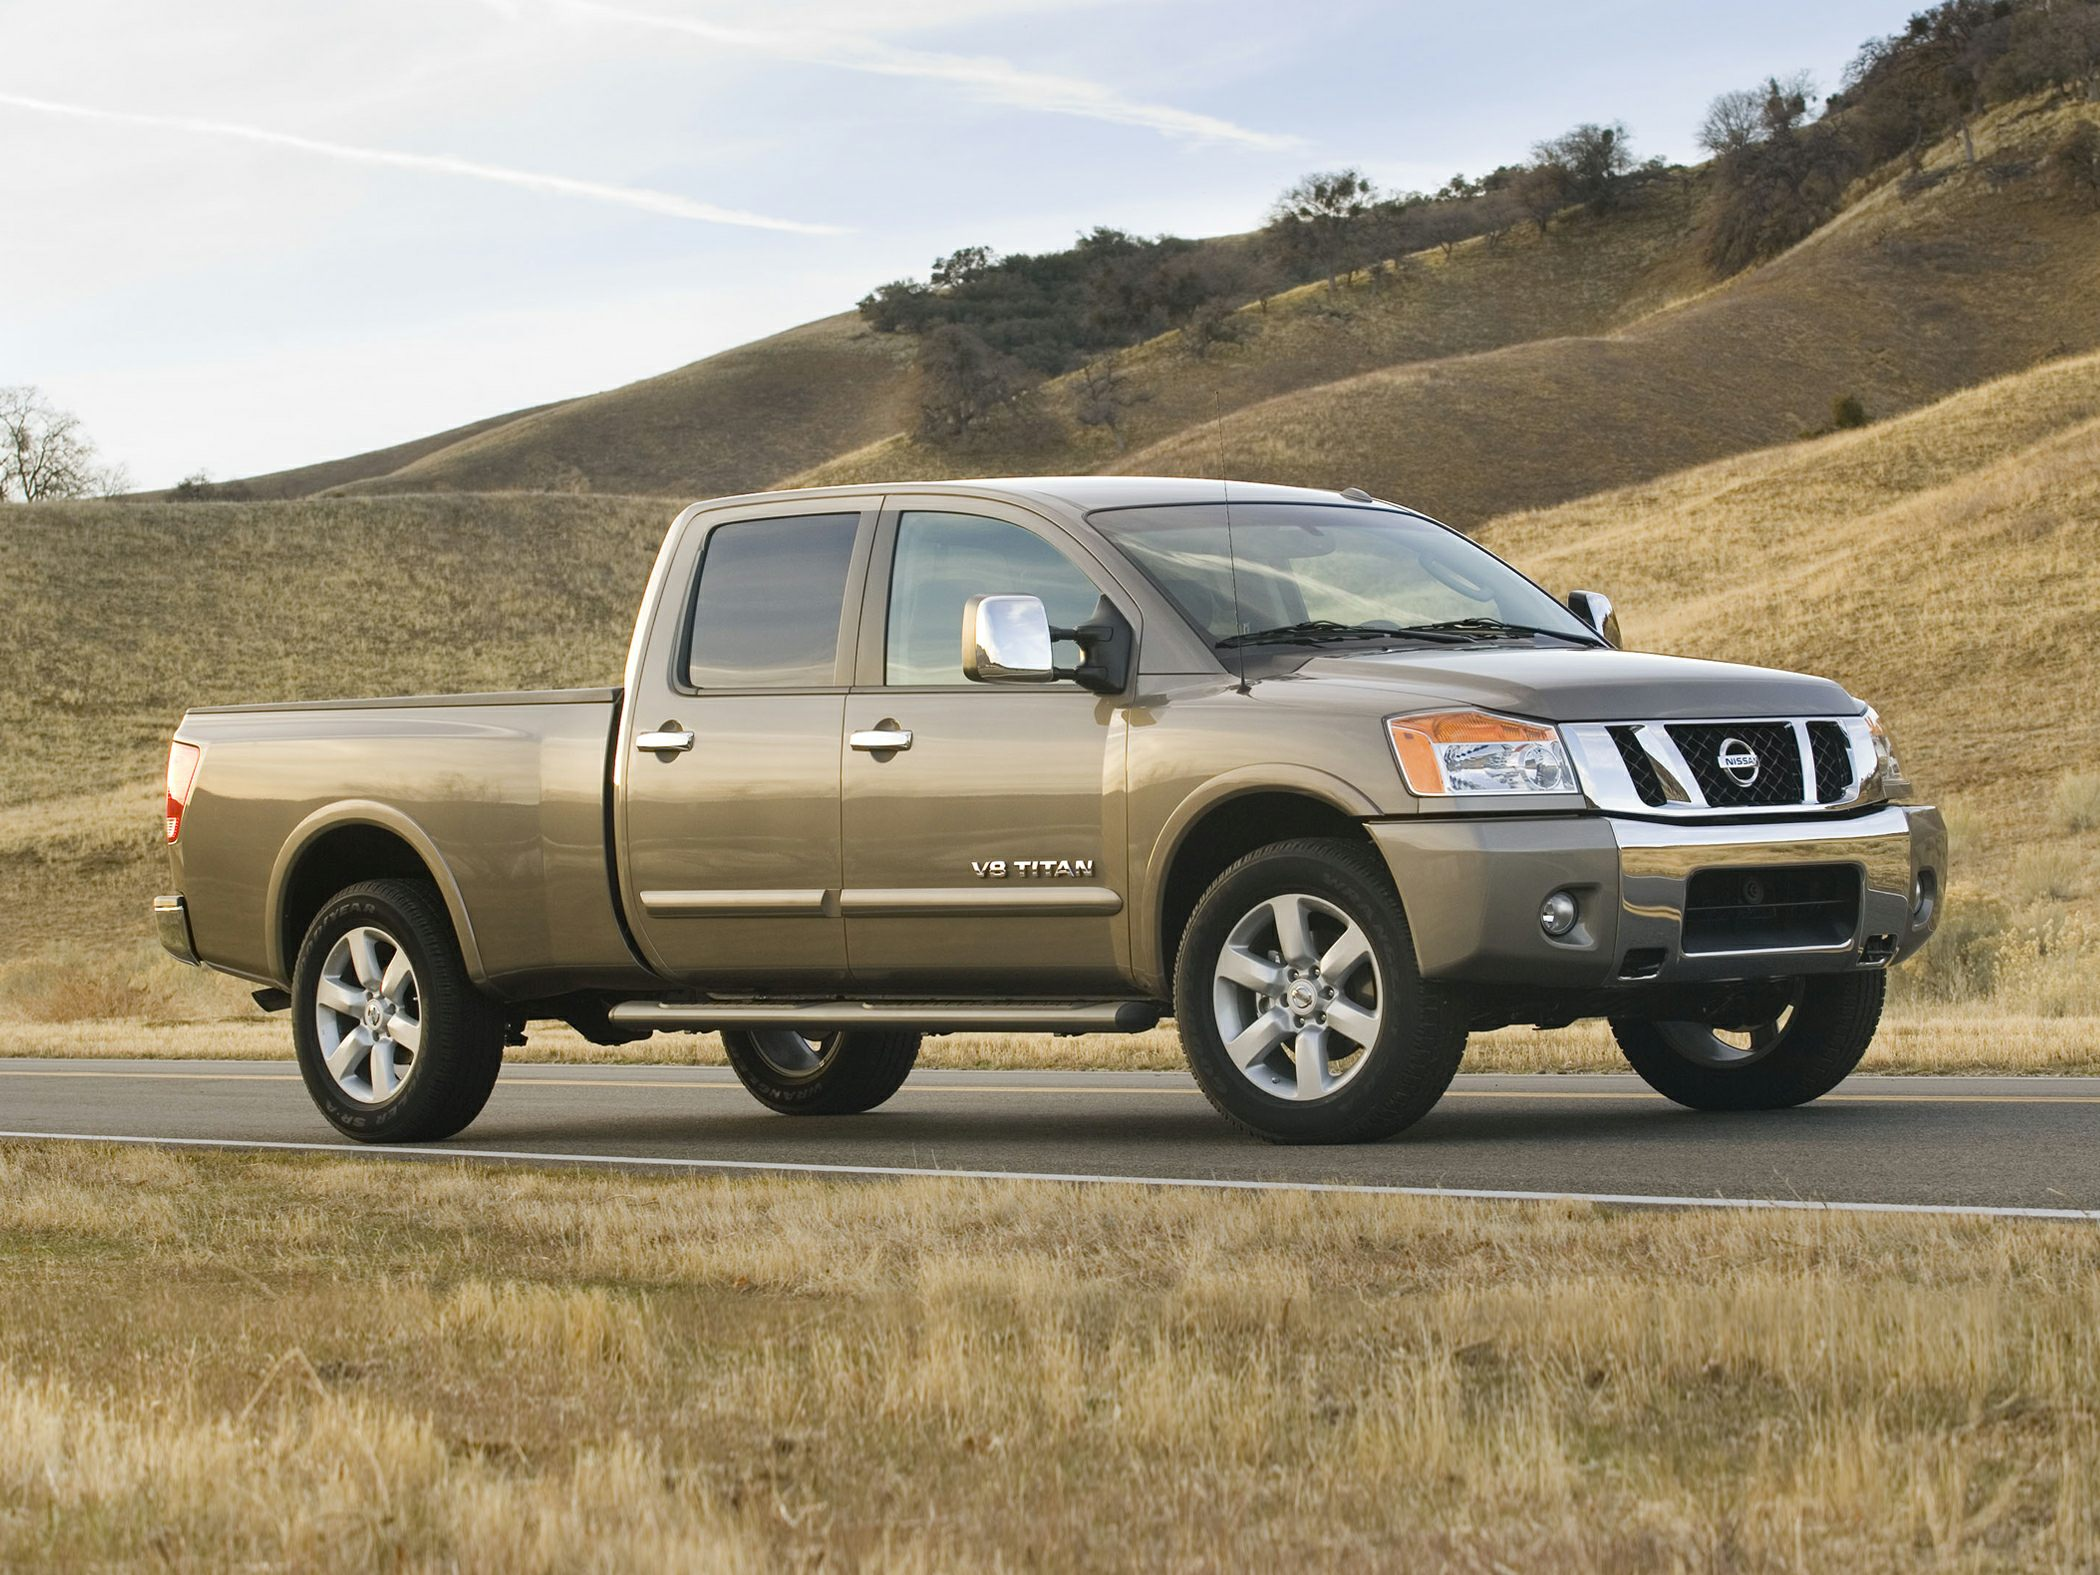 2008.5 Nissan Titan Exterior Photo